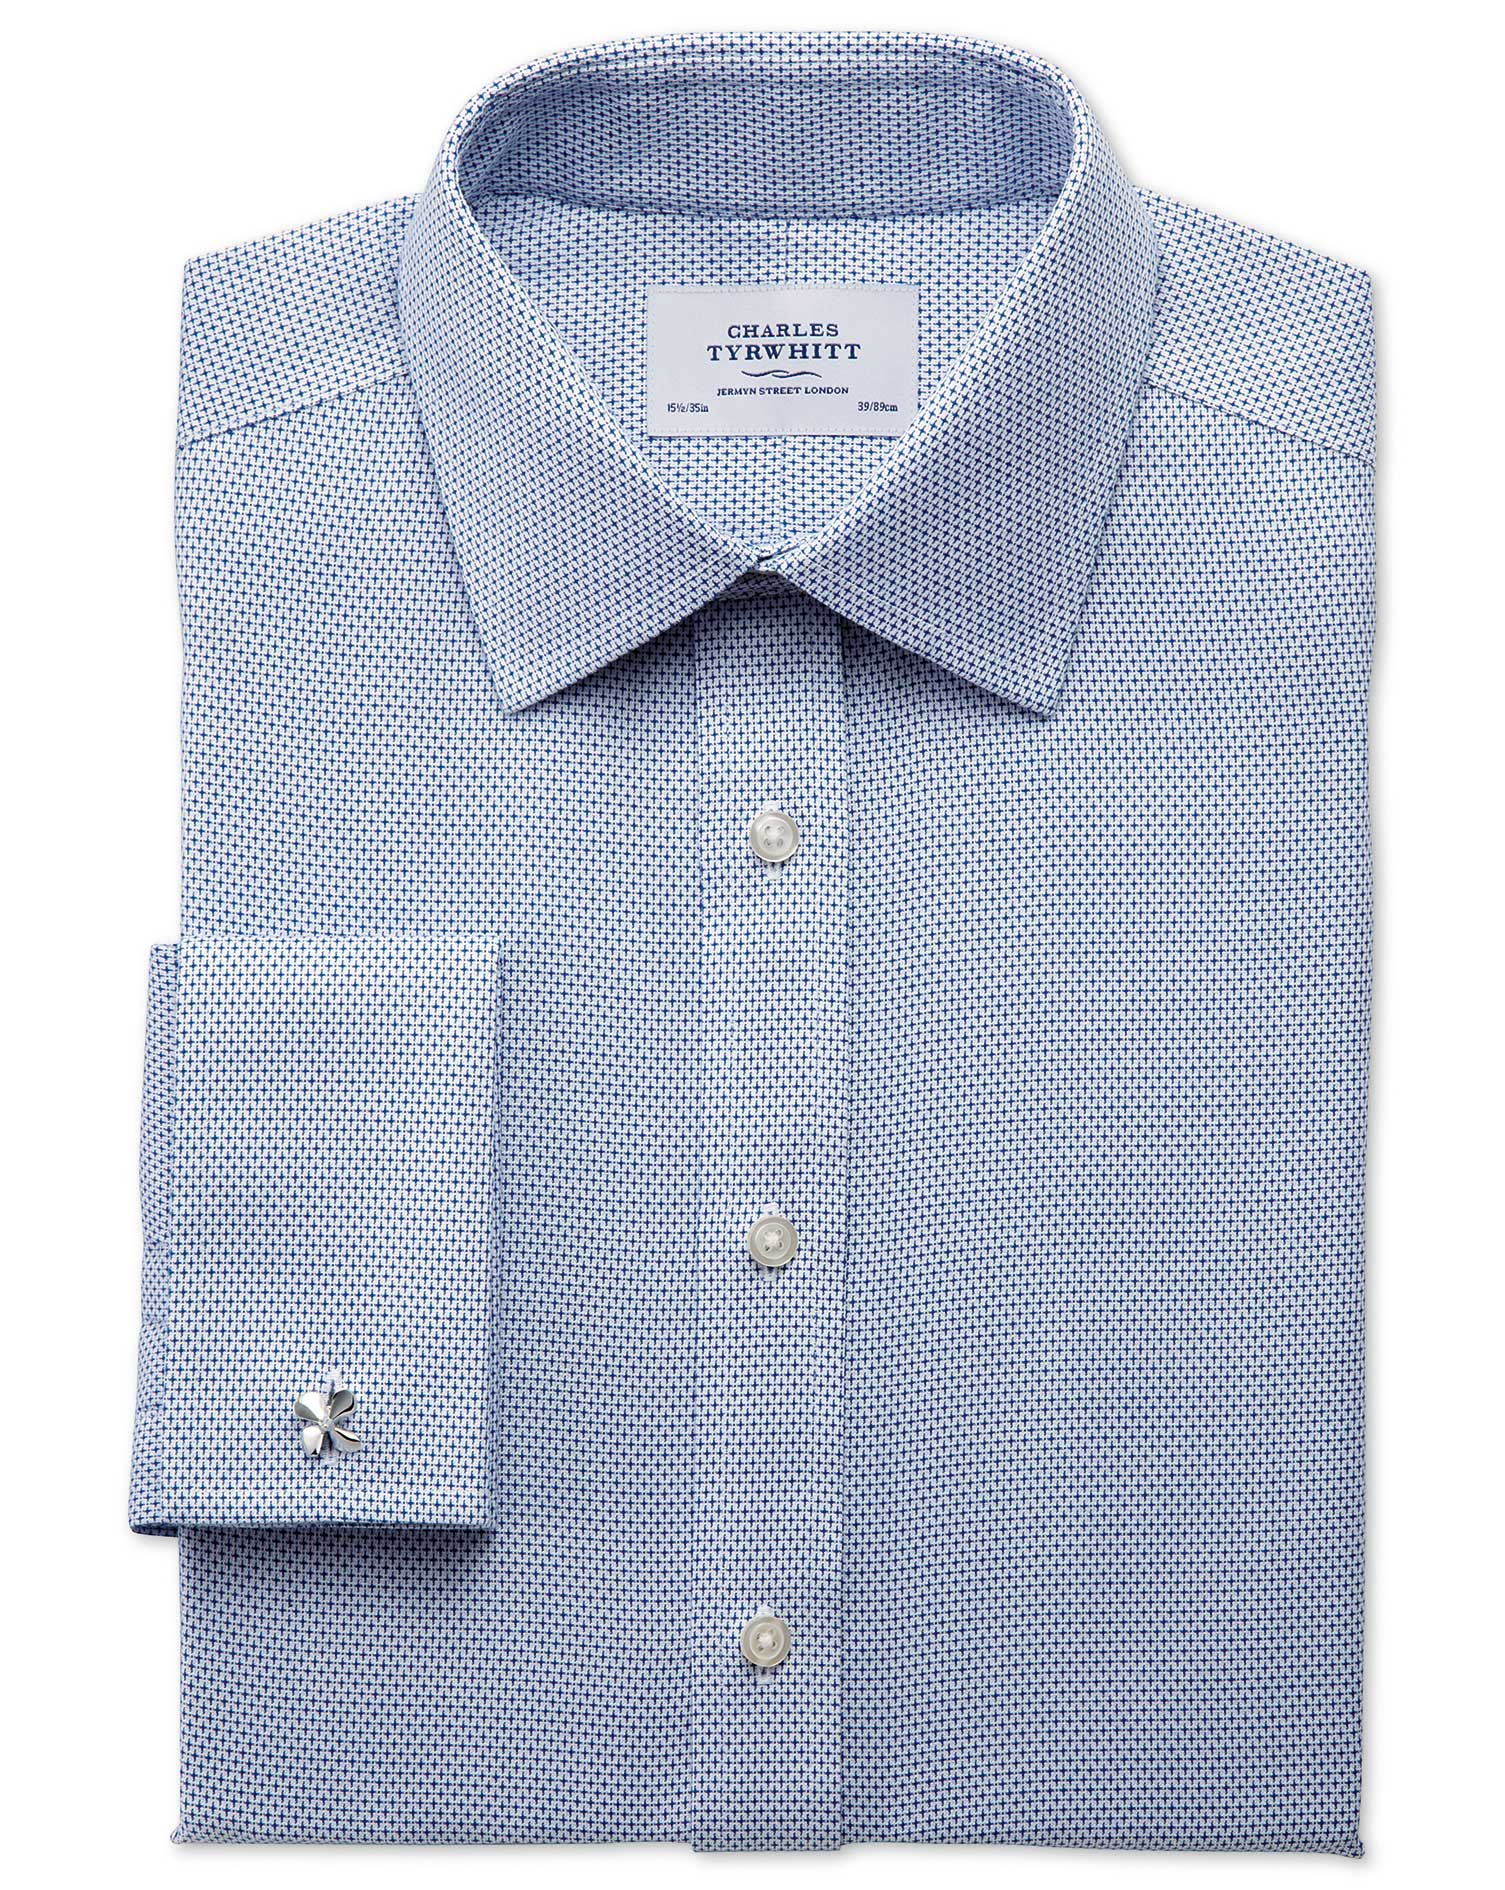 Classic Fit Non-Iron Imperial Weave Blue Cotton Formal Shirt Single Cuff Size 15.5/34 by Charles Tyr